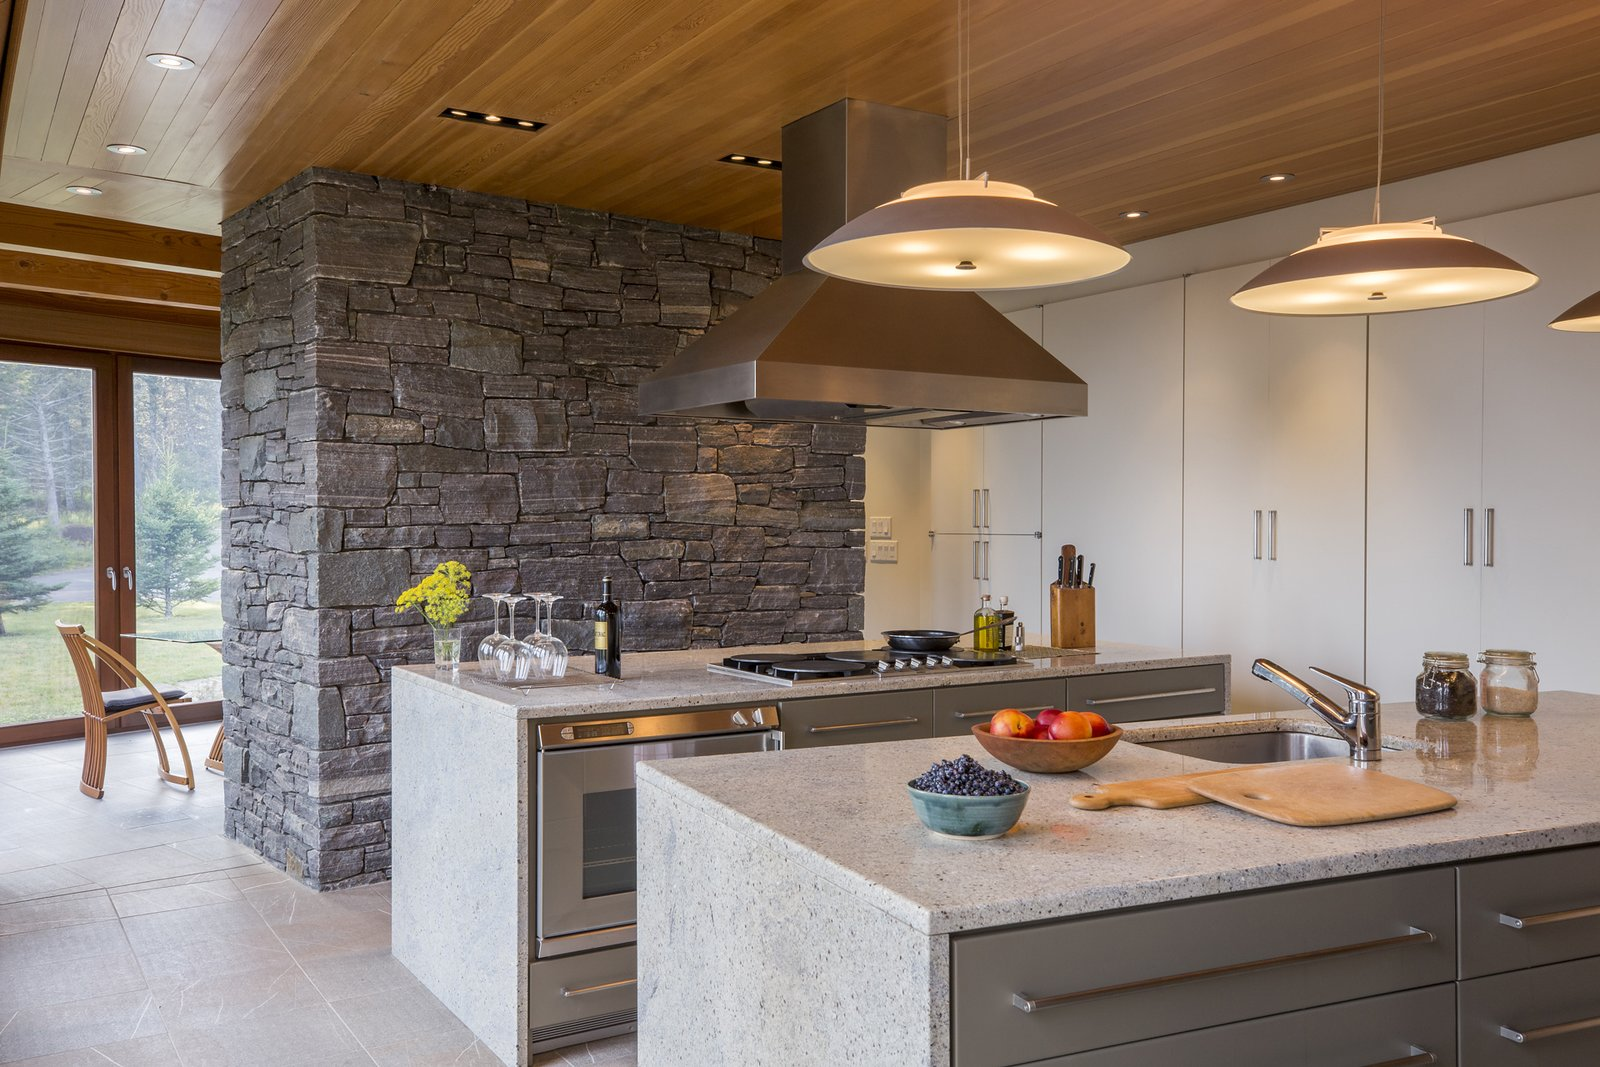 Kitchen, Granite, Colorful, Limestone, Recessed, Ceiling, Refrigerator, Wall Oven, Pendant, Cooktops, Range Hood, Dishwasher, and Undermount Kitchen, looking towards the dining room  Best Kitchen Recessed Granite Range Hood Refrigerator Cooktops Dishwasher Photos from Deep Cove House